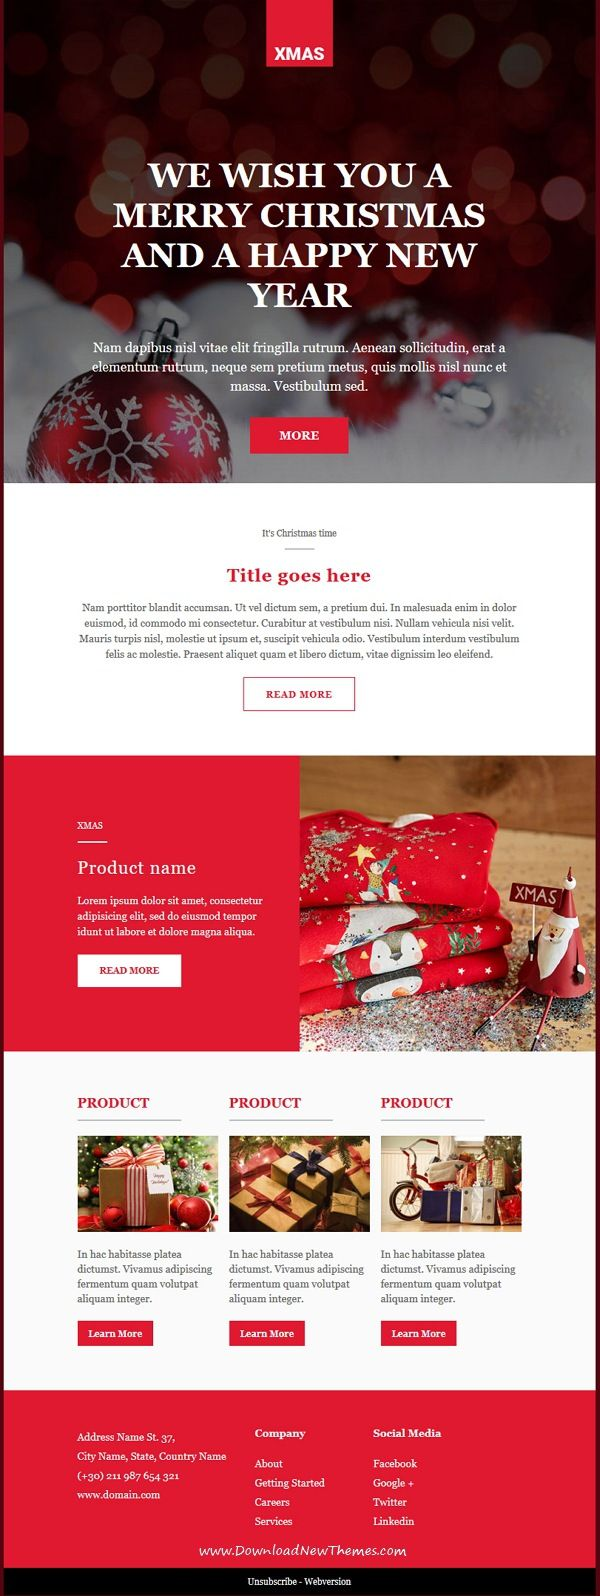 xmas is clean and modern design 8in1 responsive email newsletter